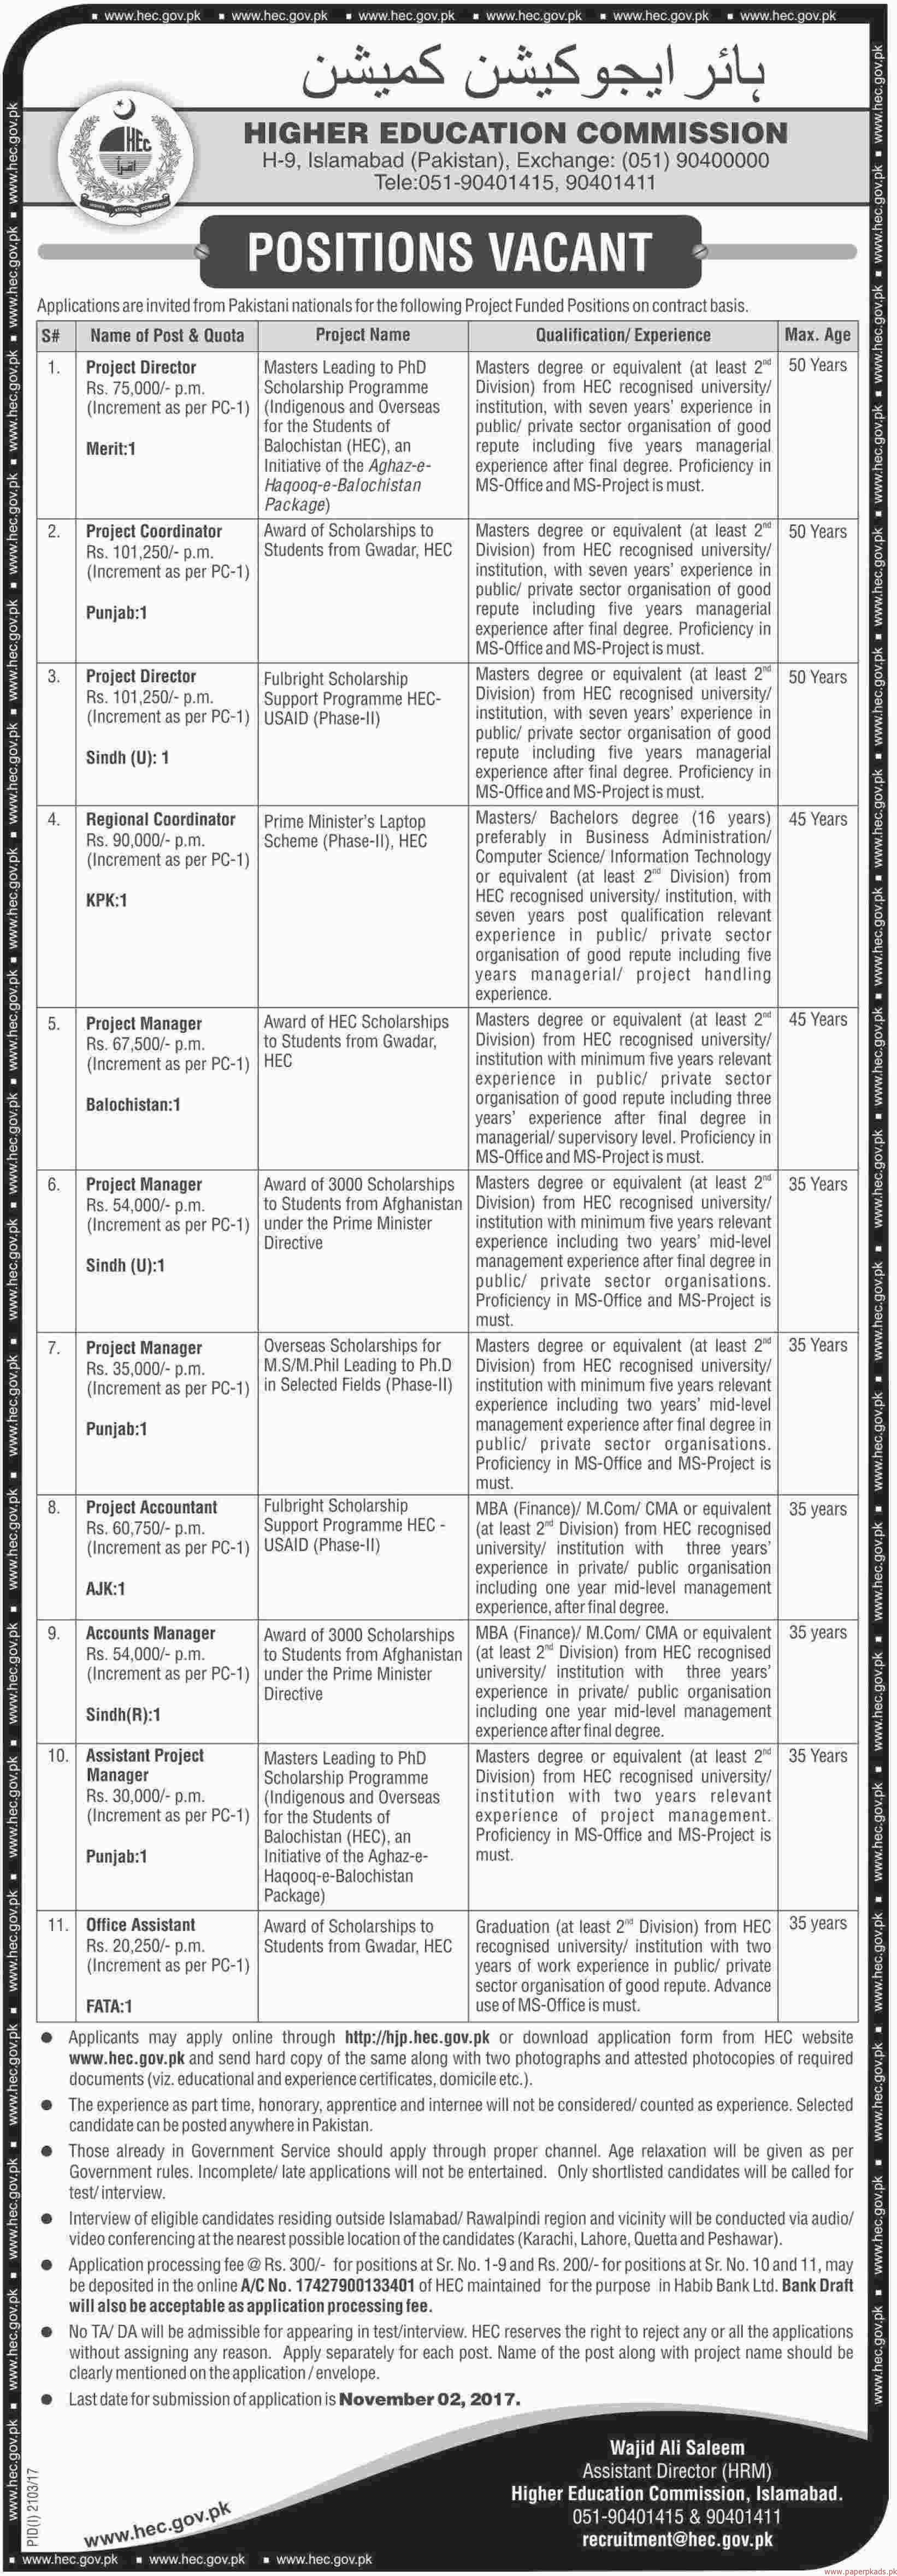 Higher Education Commission Pakistan Jobs 2017